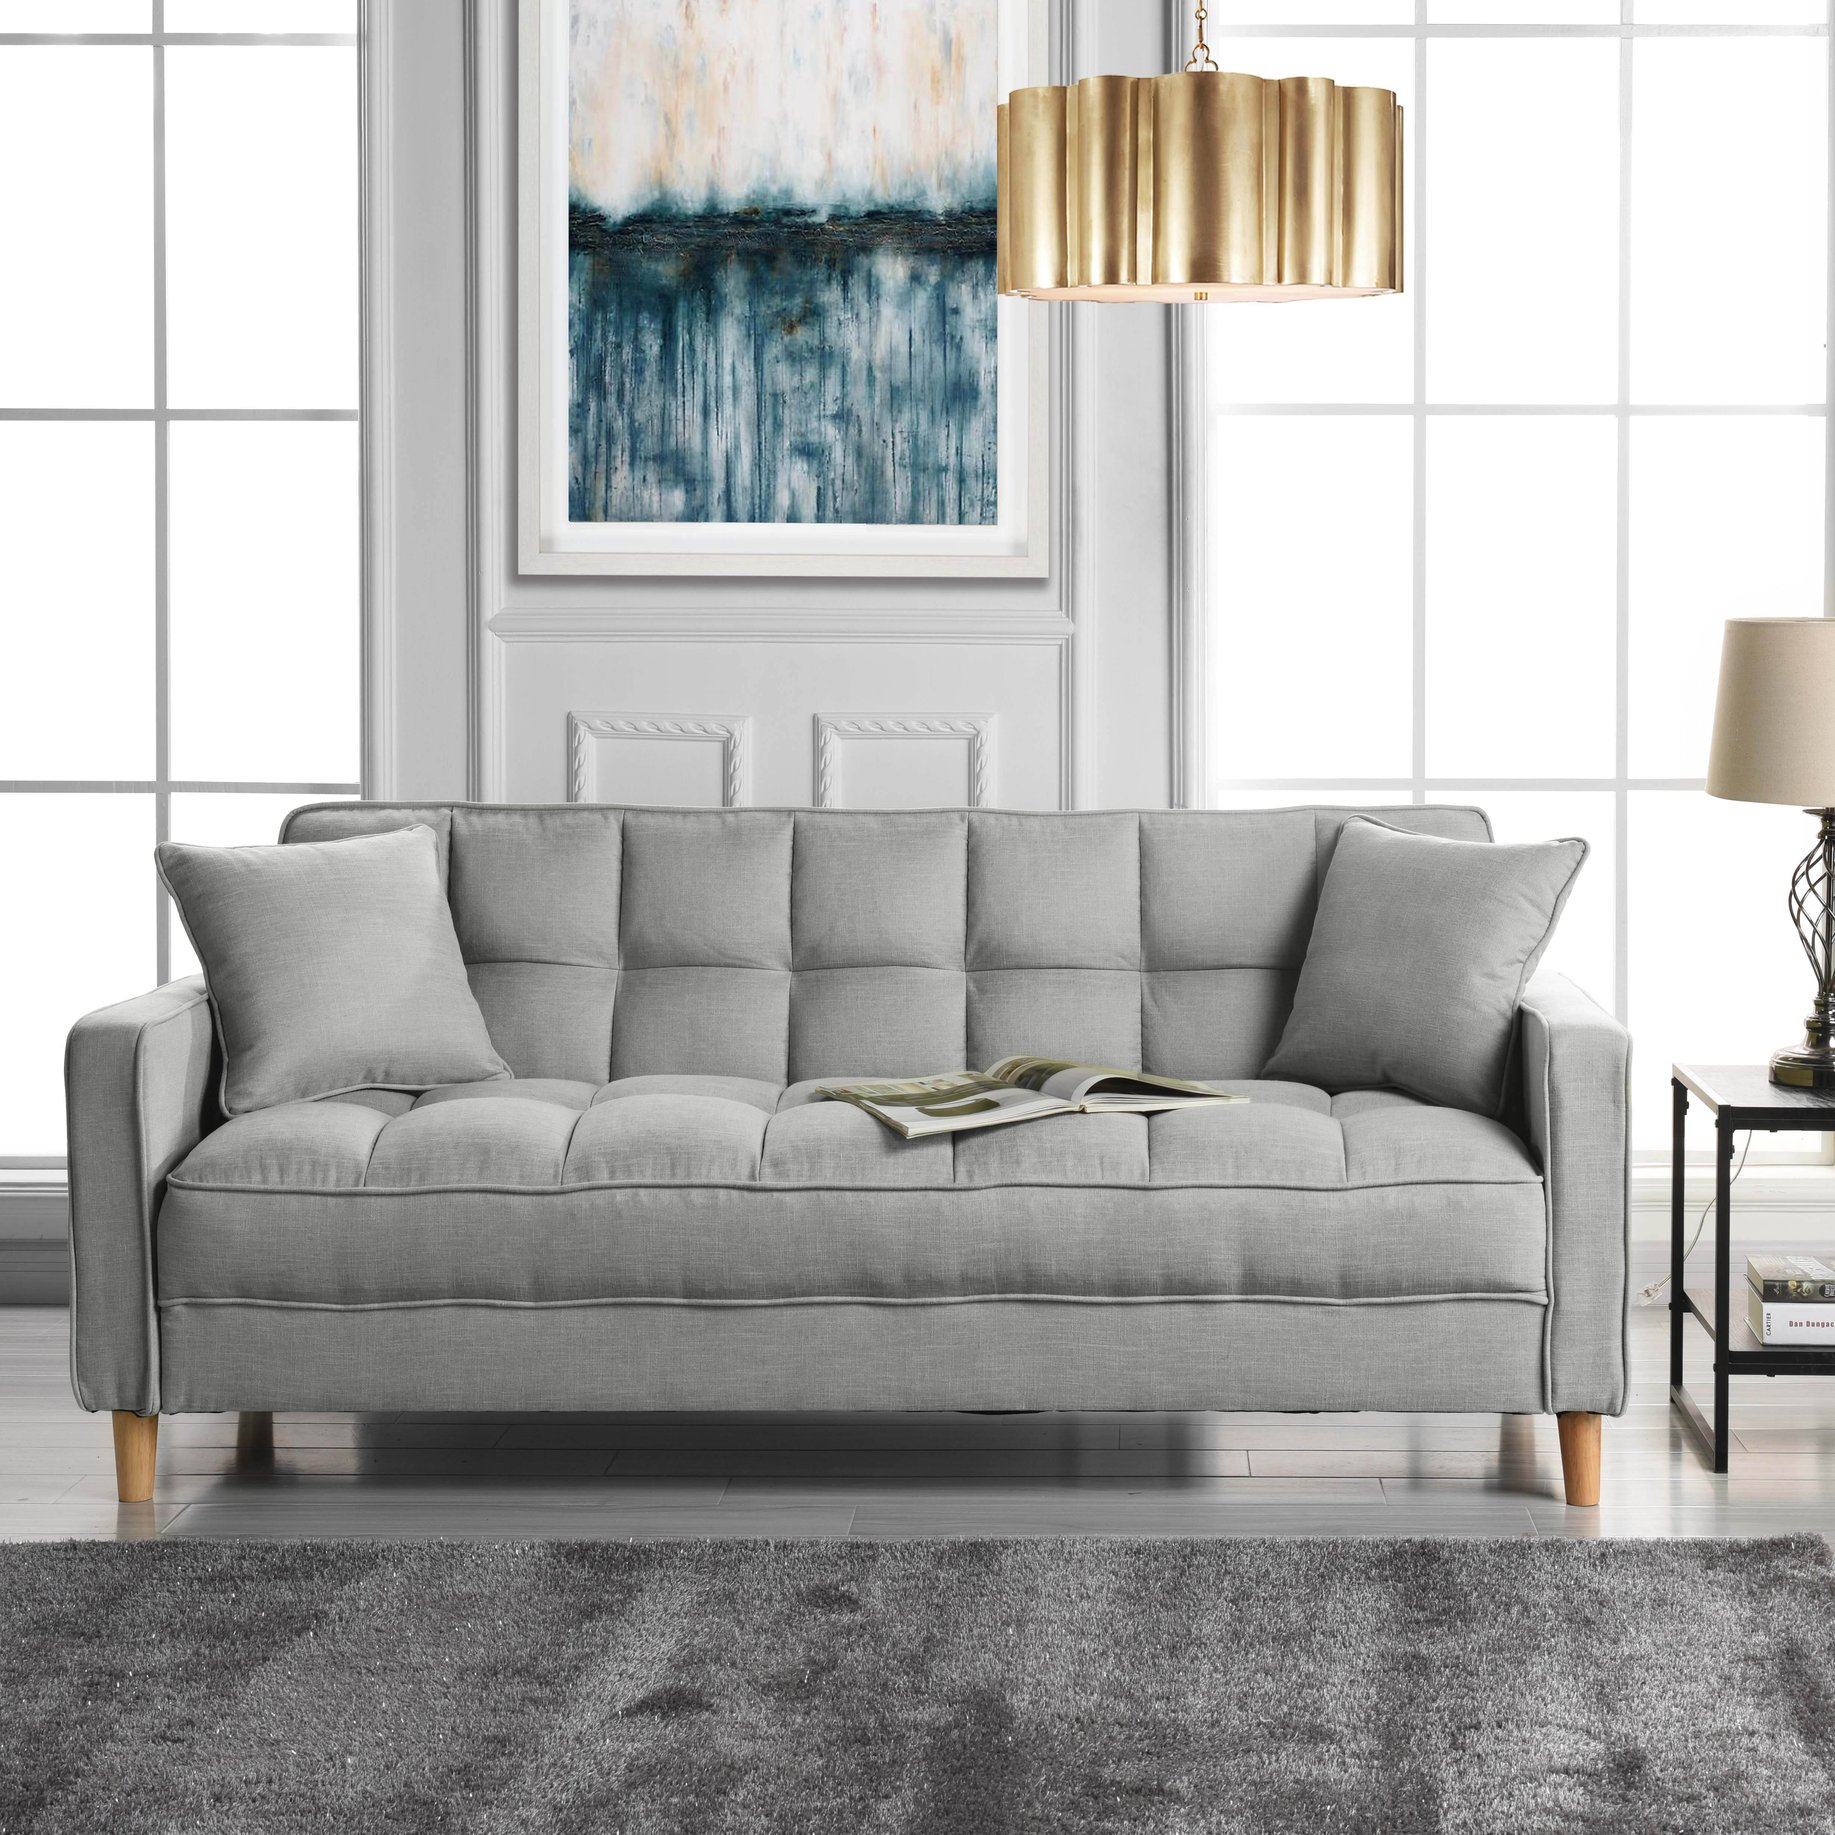 Contemporary Fabric Sofa with Tufted Detail and Natural Wooden Legs ...